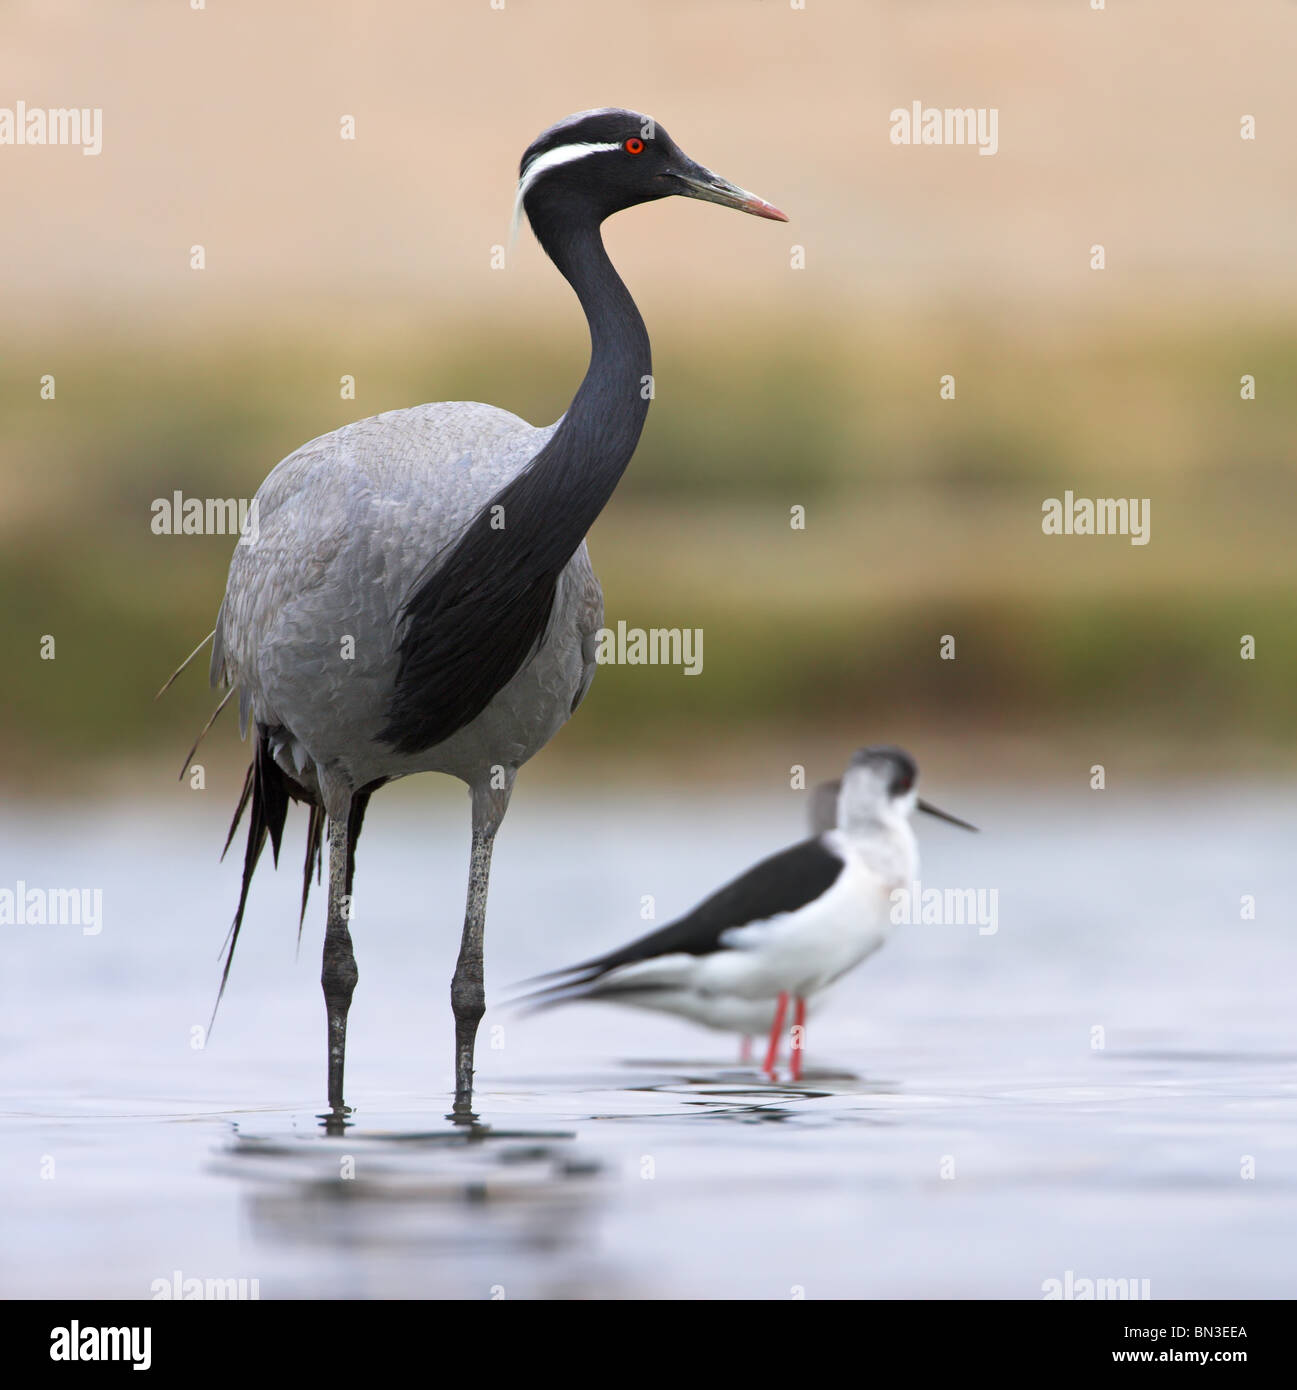 Demoiselle Crane (Anthropoides virgo) and Black-winged Stilts (Himantopus himantopus) standing in shallow water Stock Photo